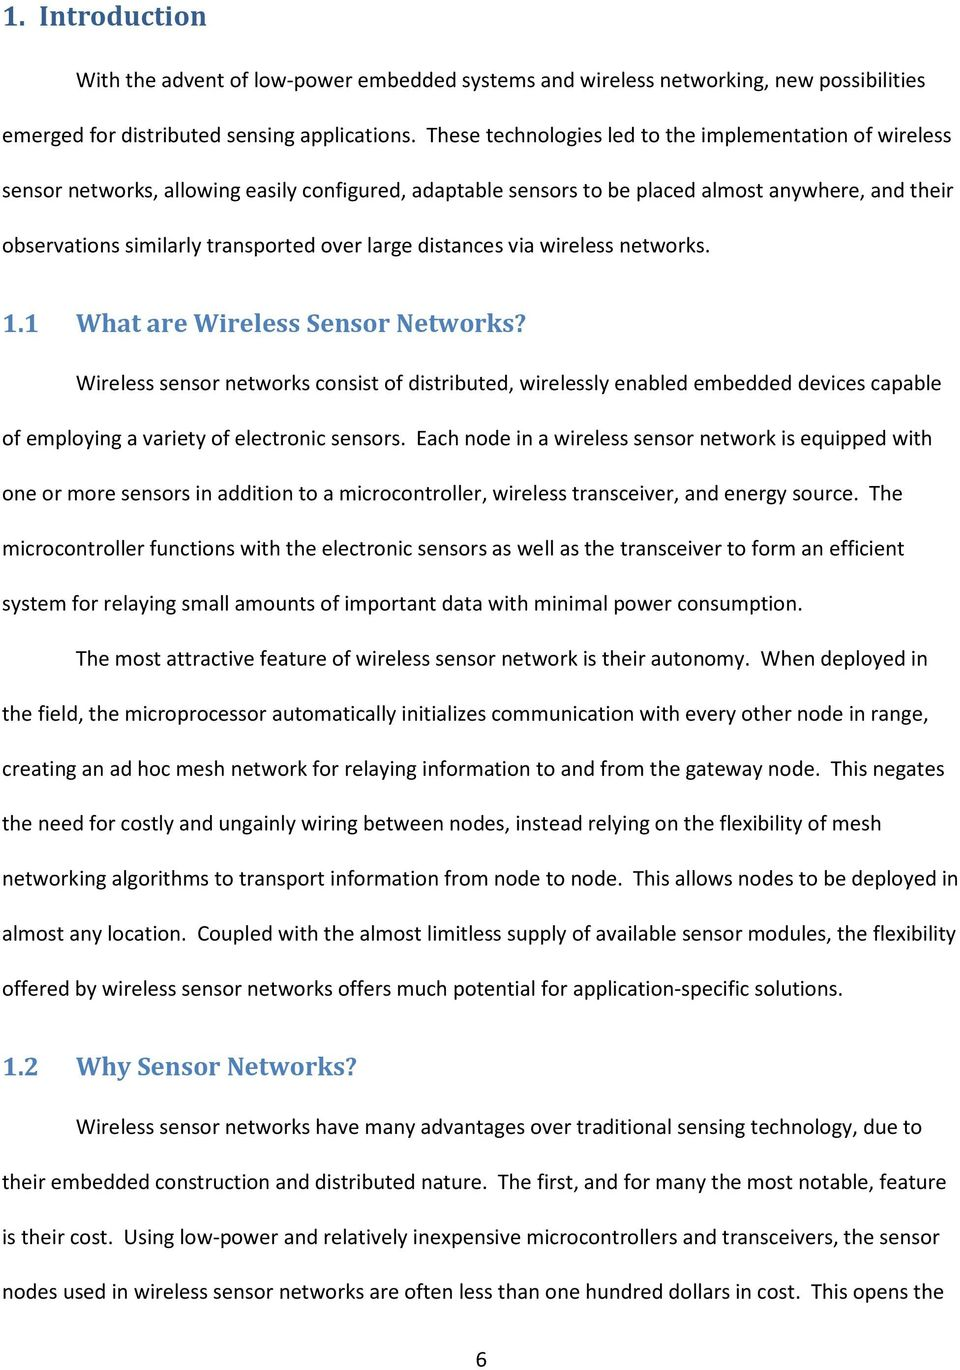 large distances via wireless networks. 1.1 What are Wireless Sensor Networks?